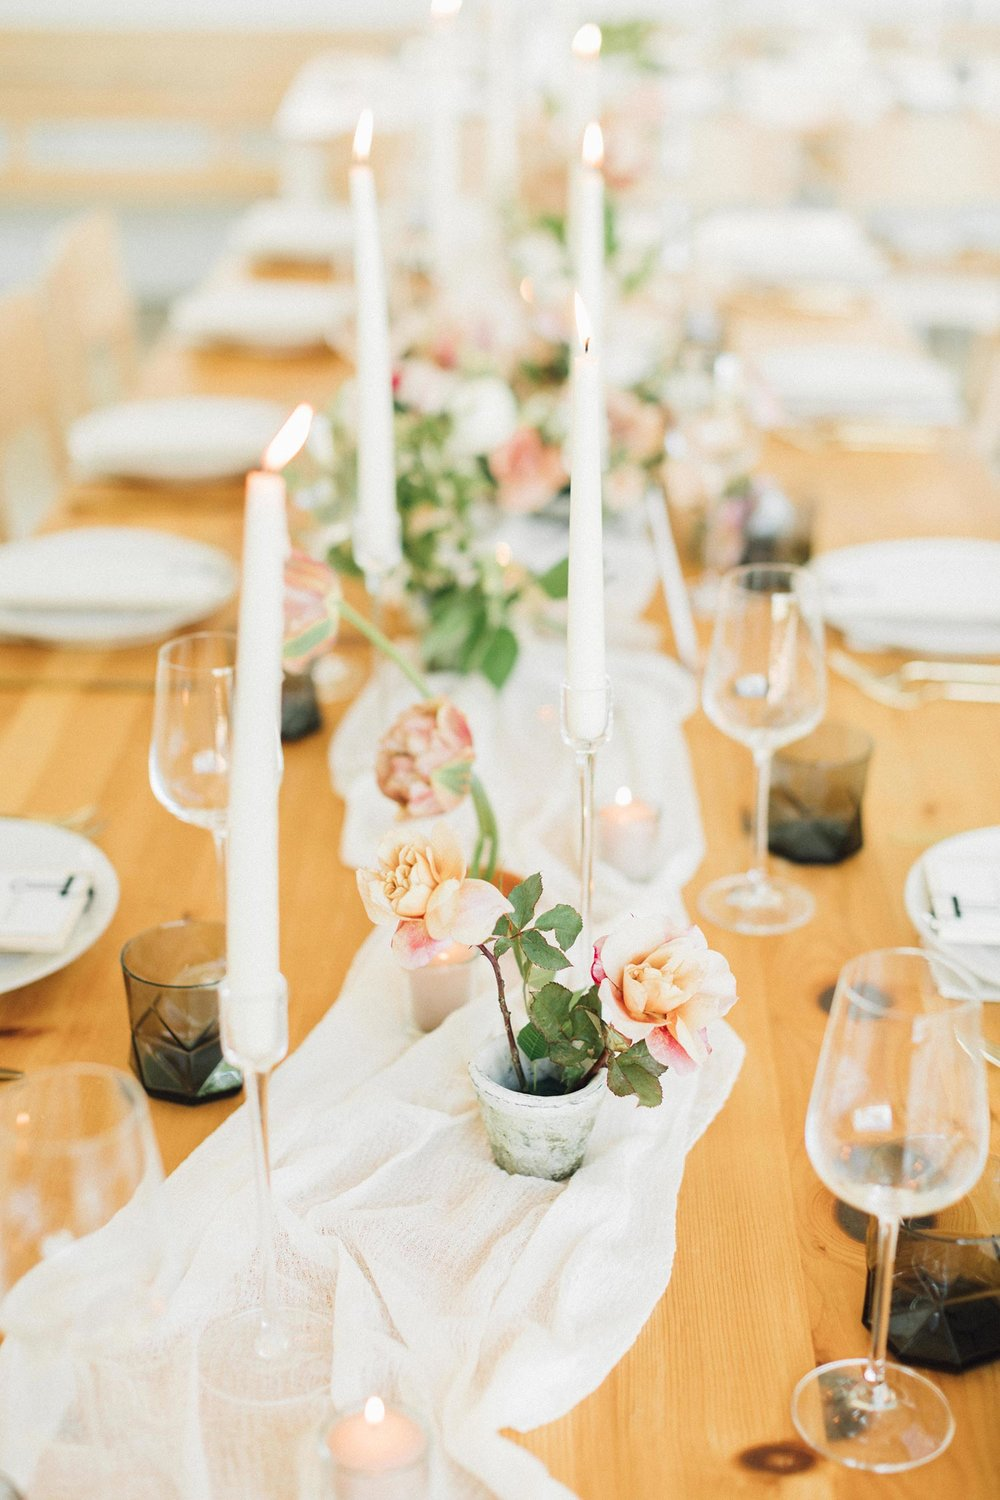 Boutique florals: Portland florist Color Theory Collective